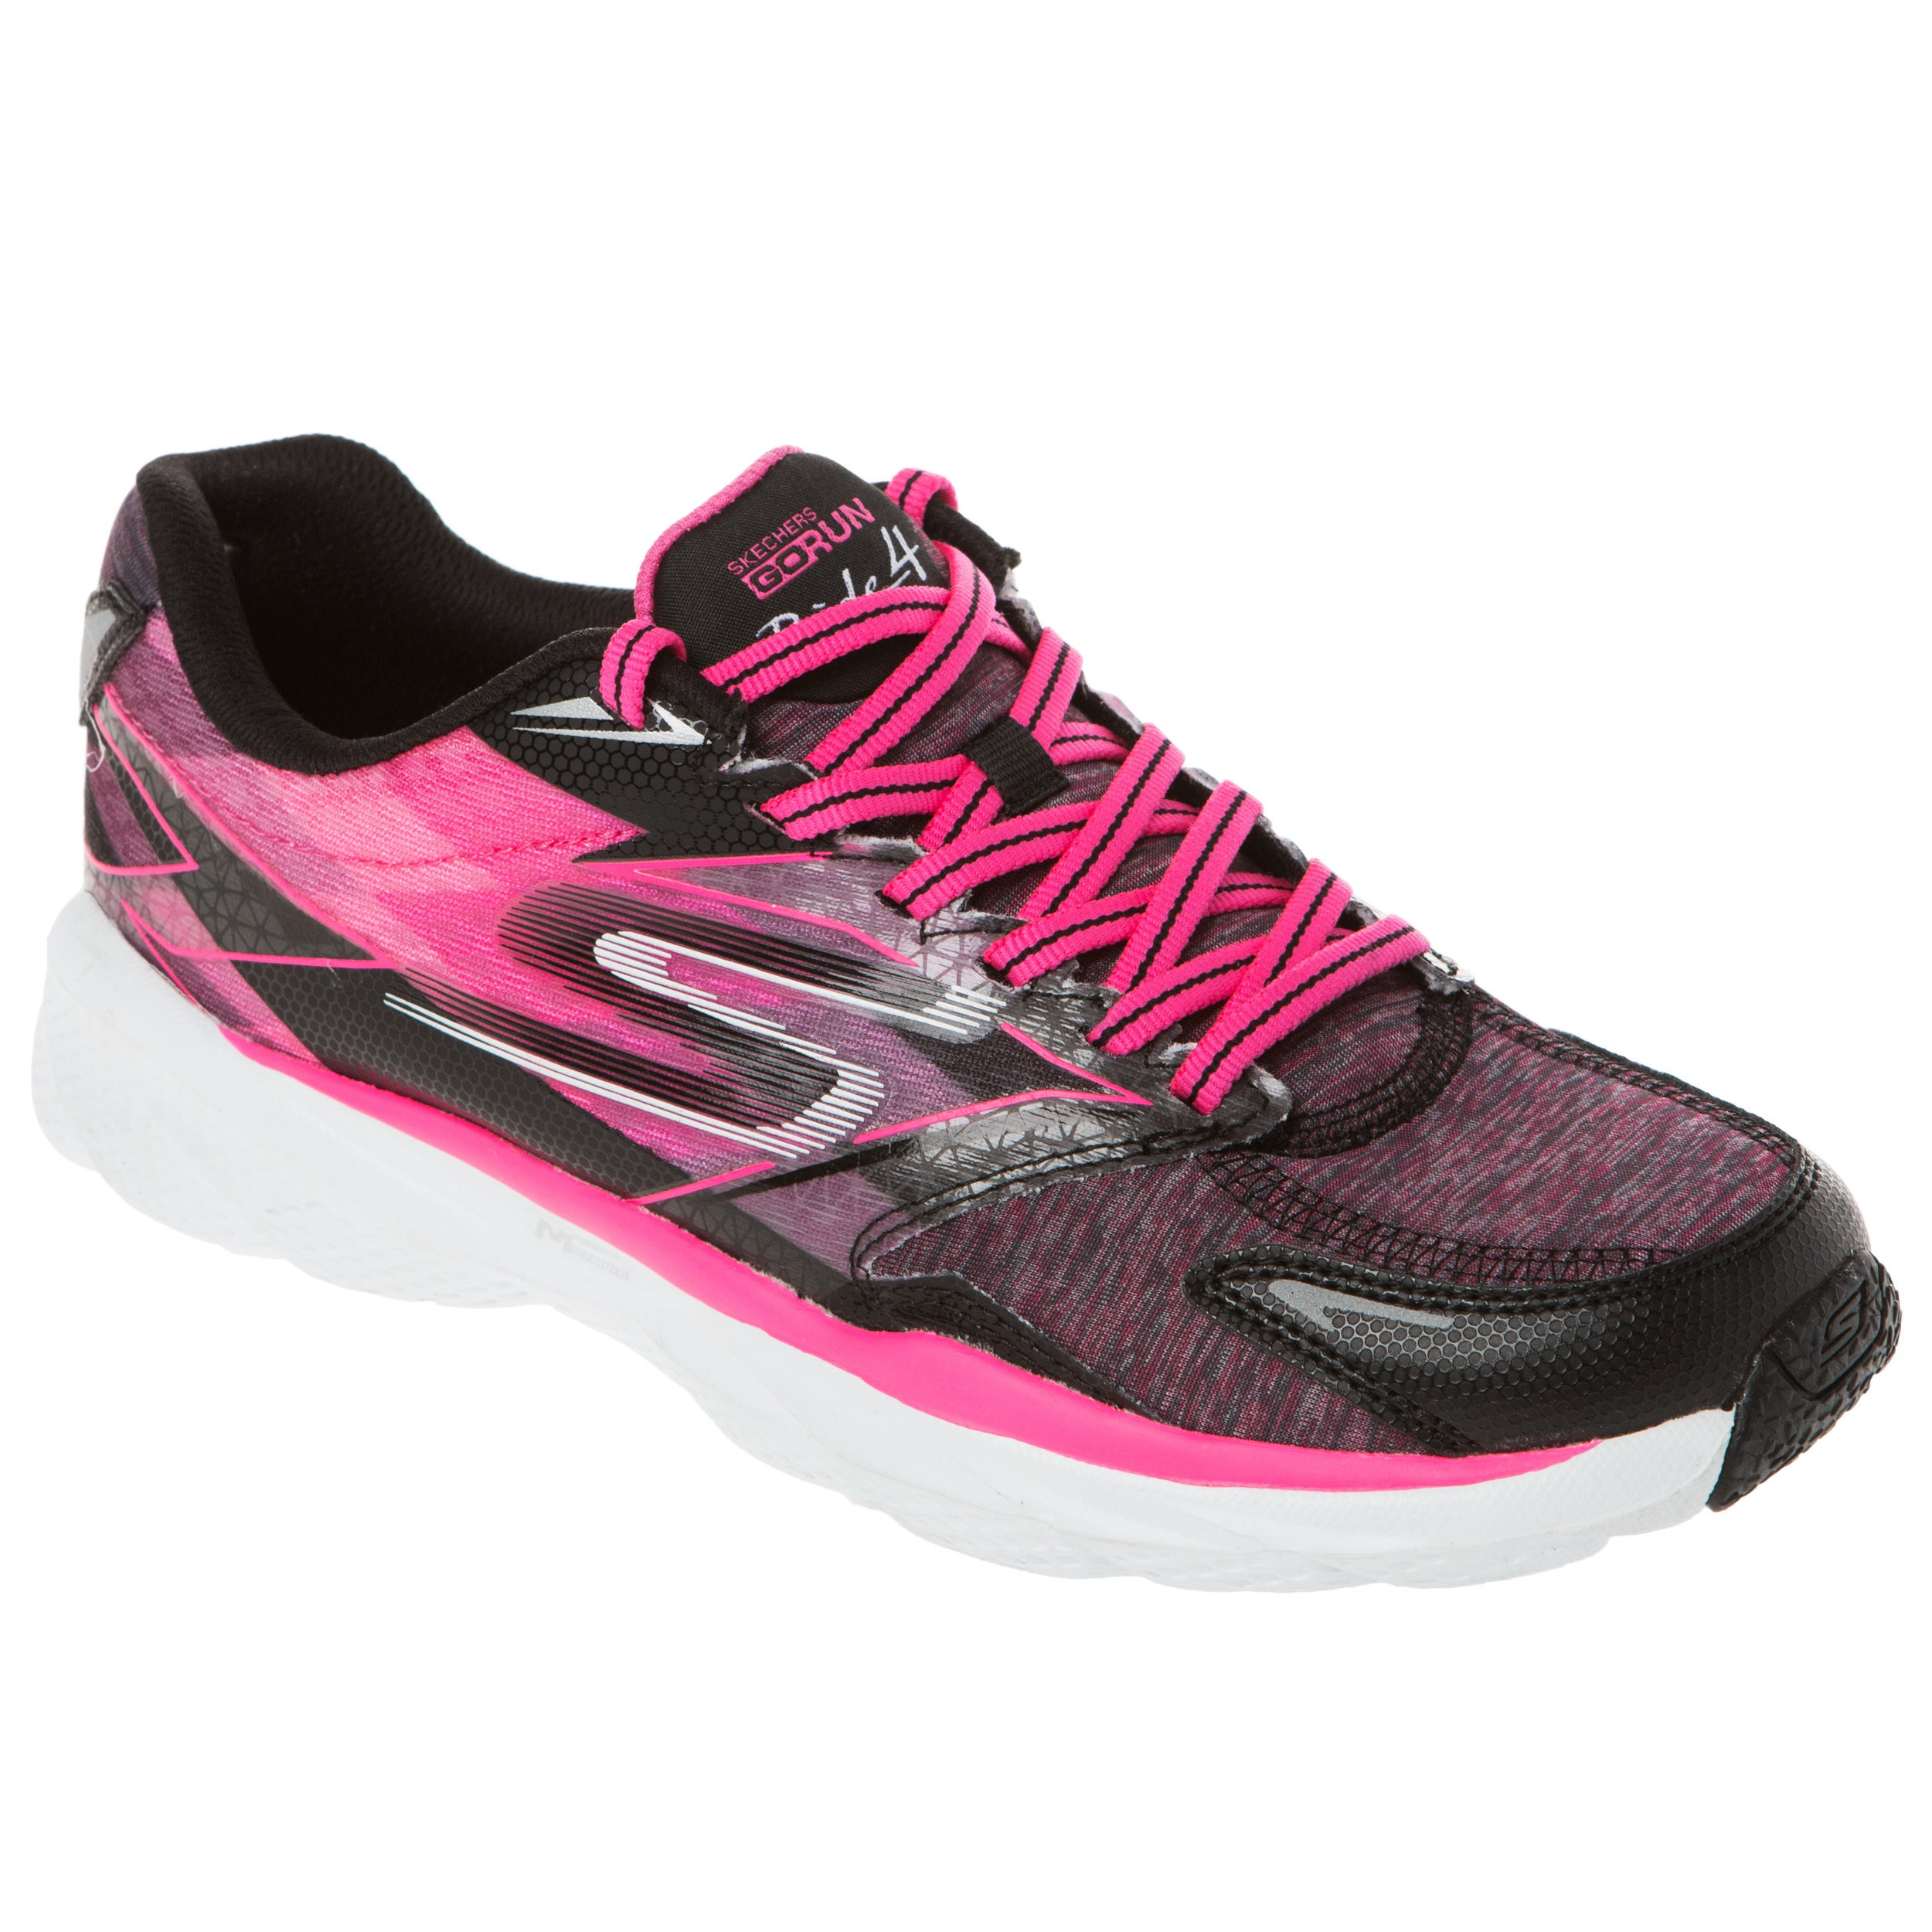 Skechers USA GO Run Ride 4 Excess Heathered Cushioned Running Sneaker